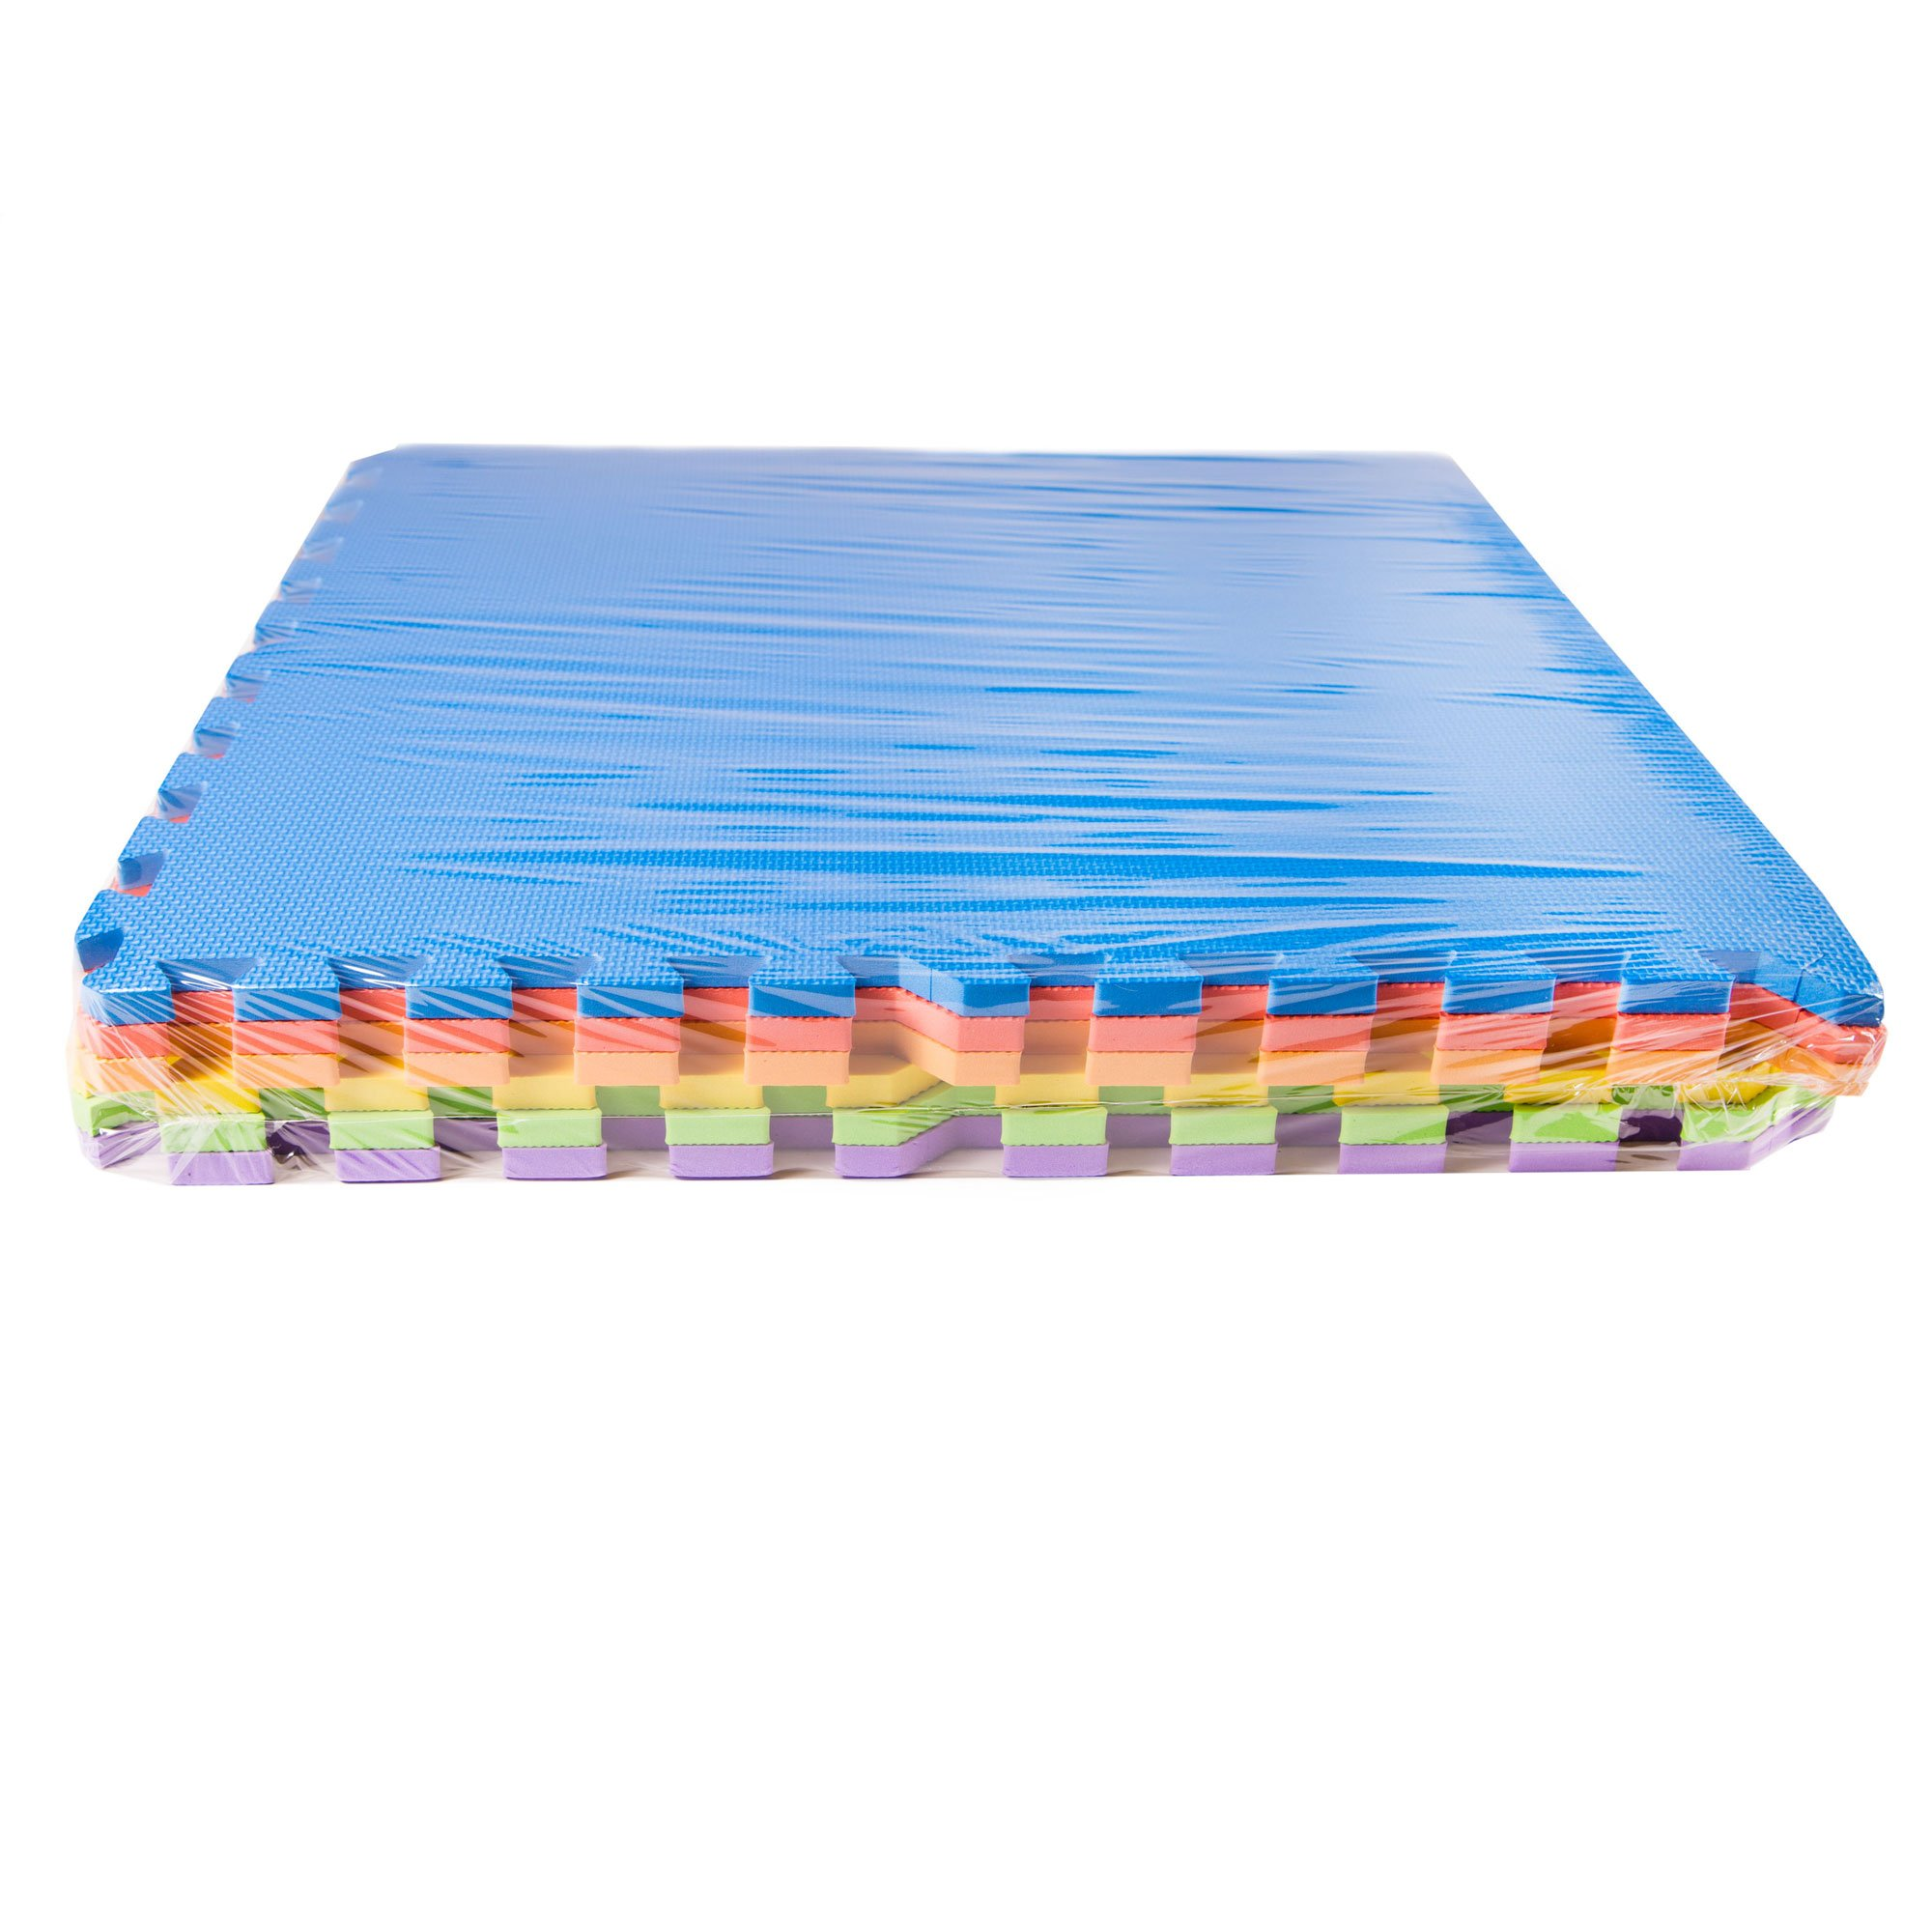 IncStores - Rainbow Foam Tiles (12 Pack) - 2ft x 2ft Interlocking Foam Children's Portable Playmats by IncStores (Image #2)